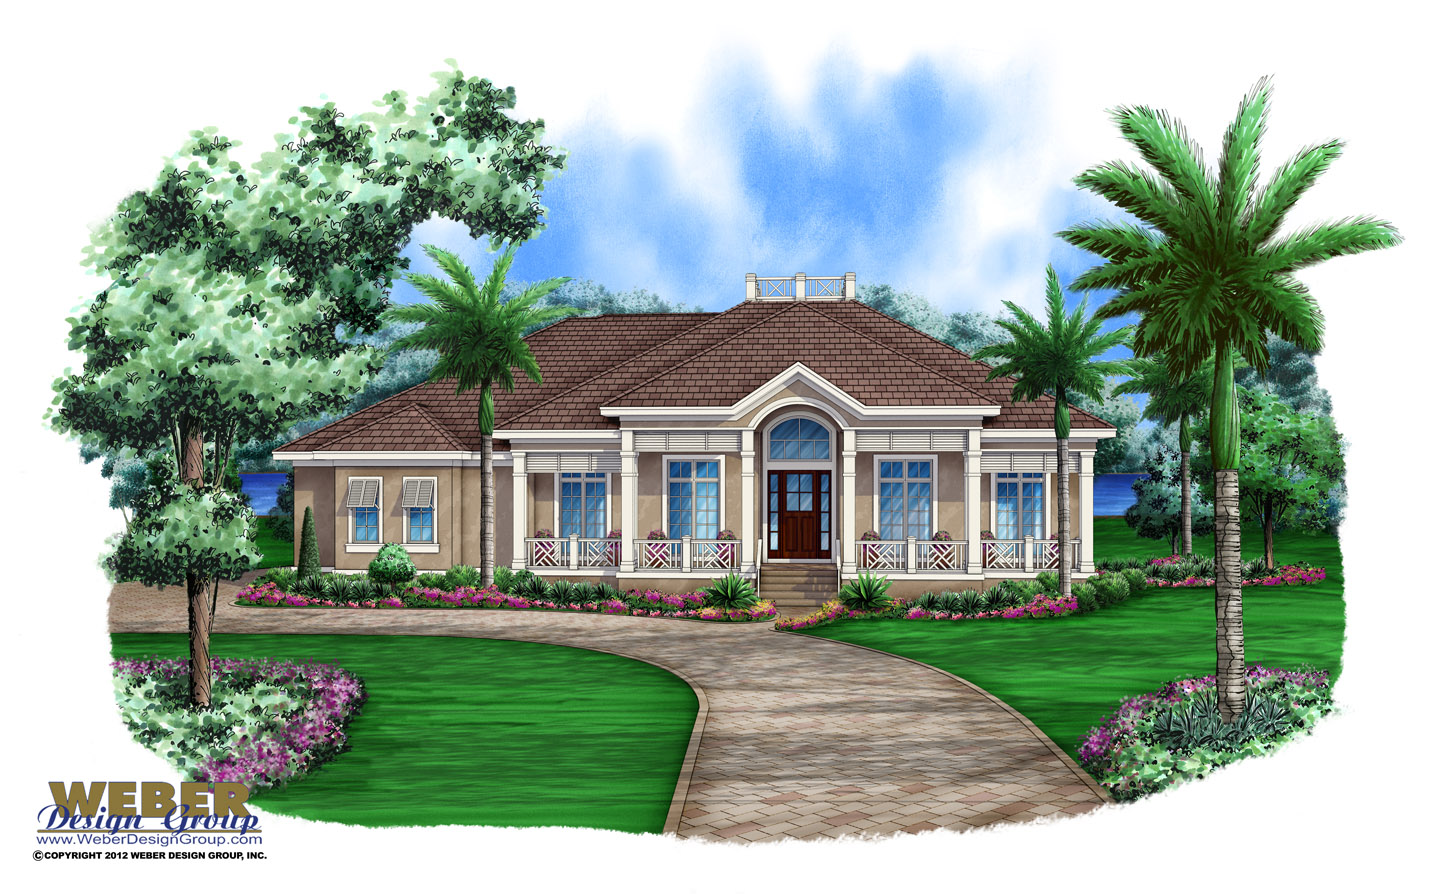 Florida House Plans Florida House Plan - Suncrest 30-499 Floor Plans ...